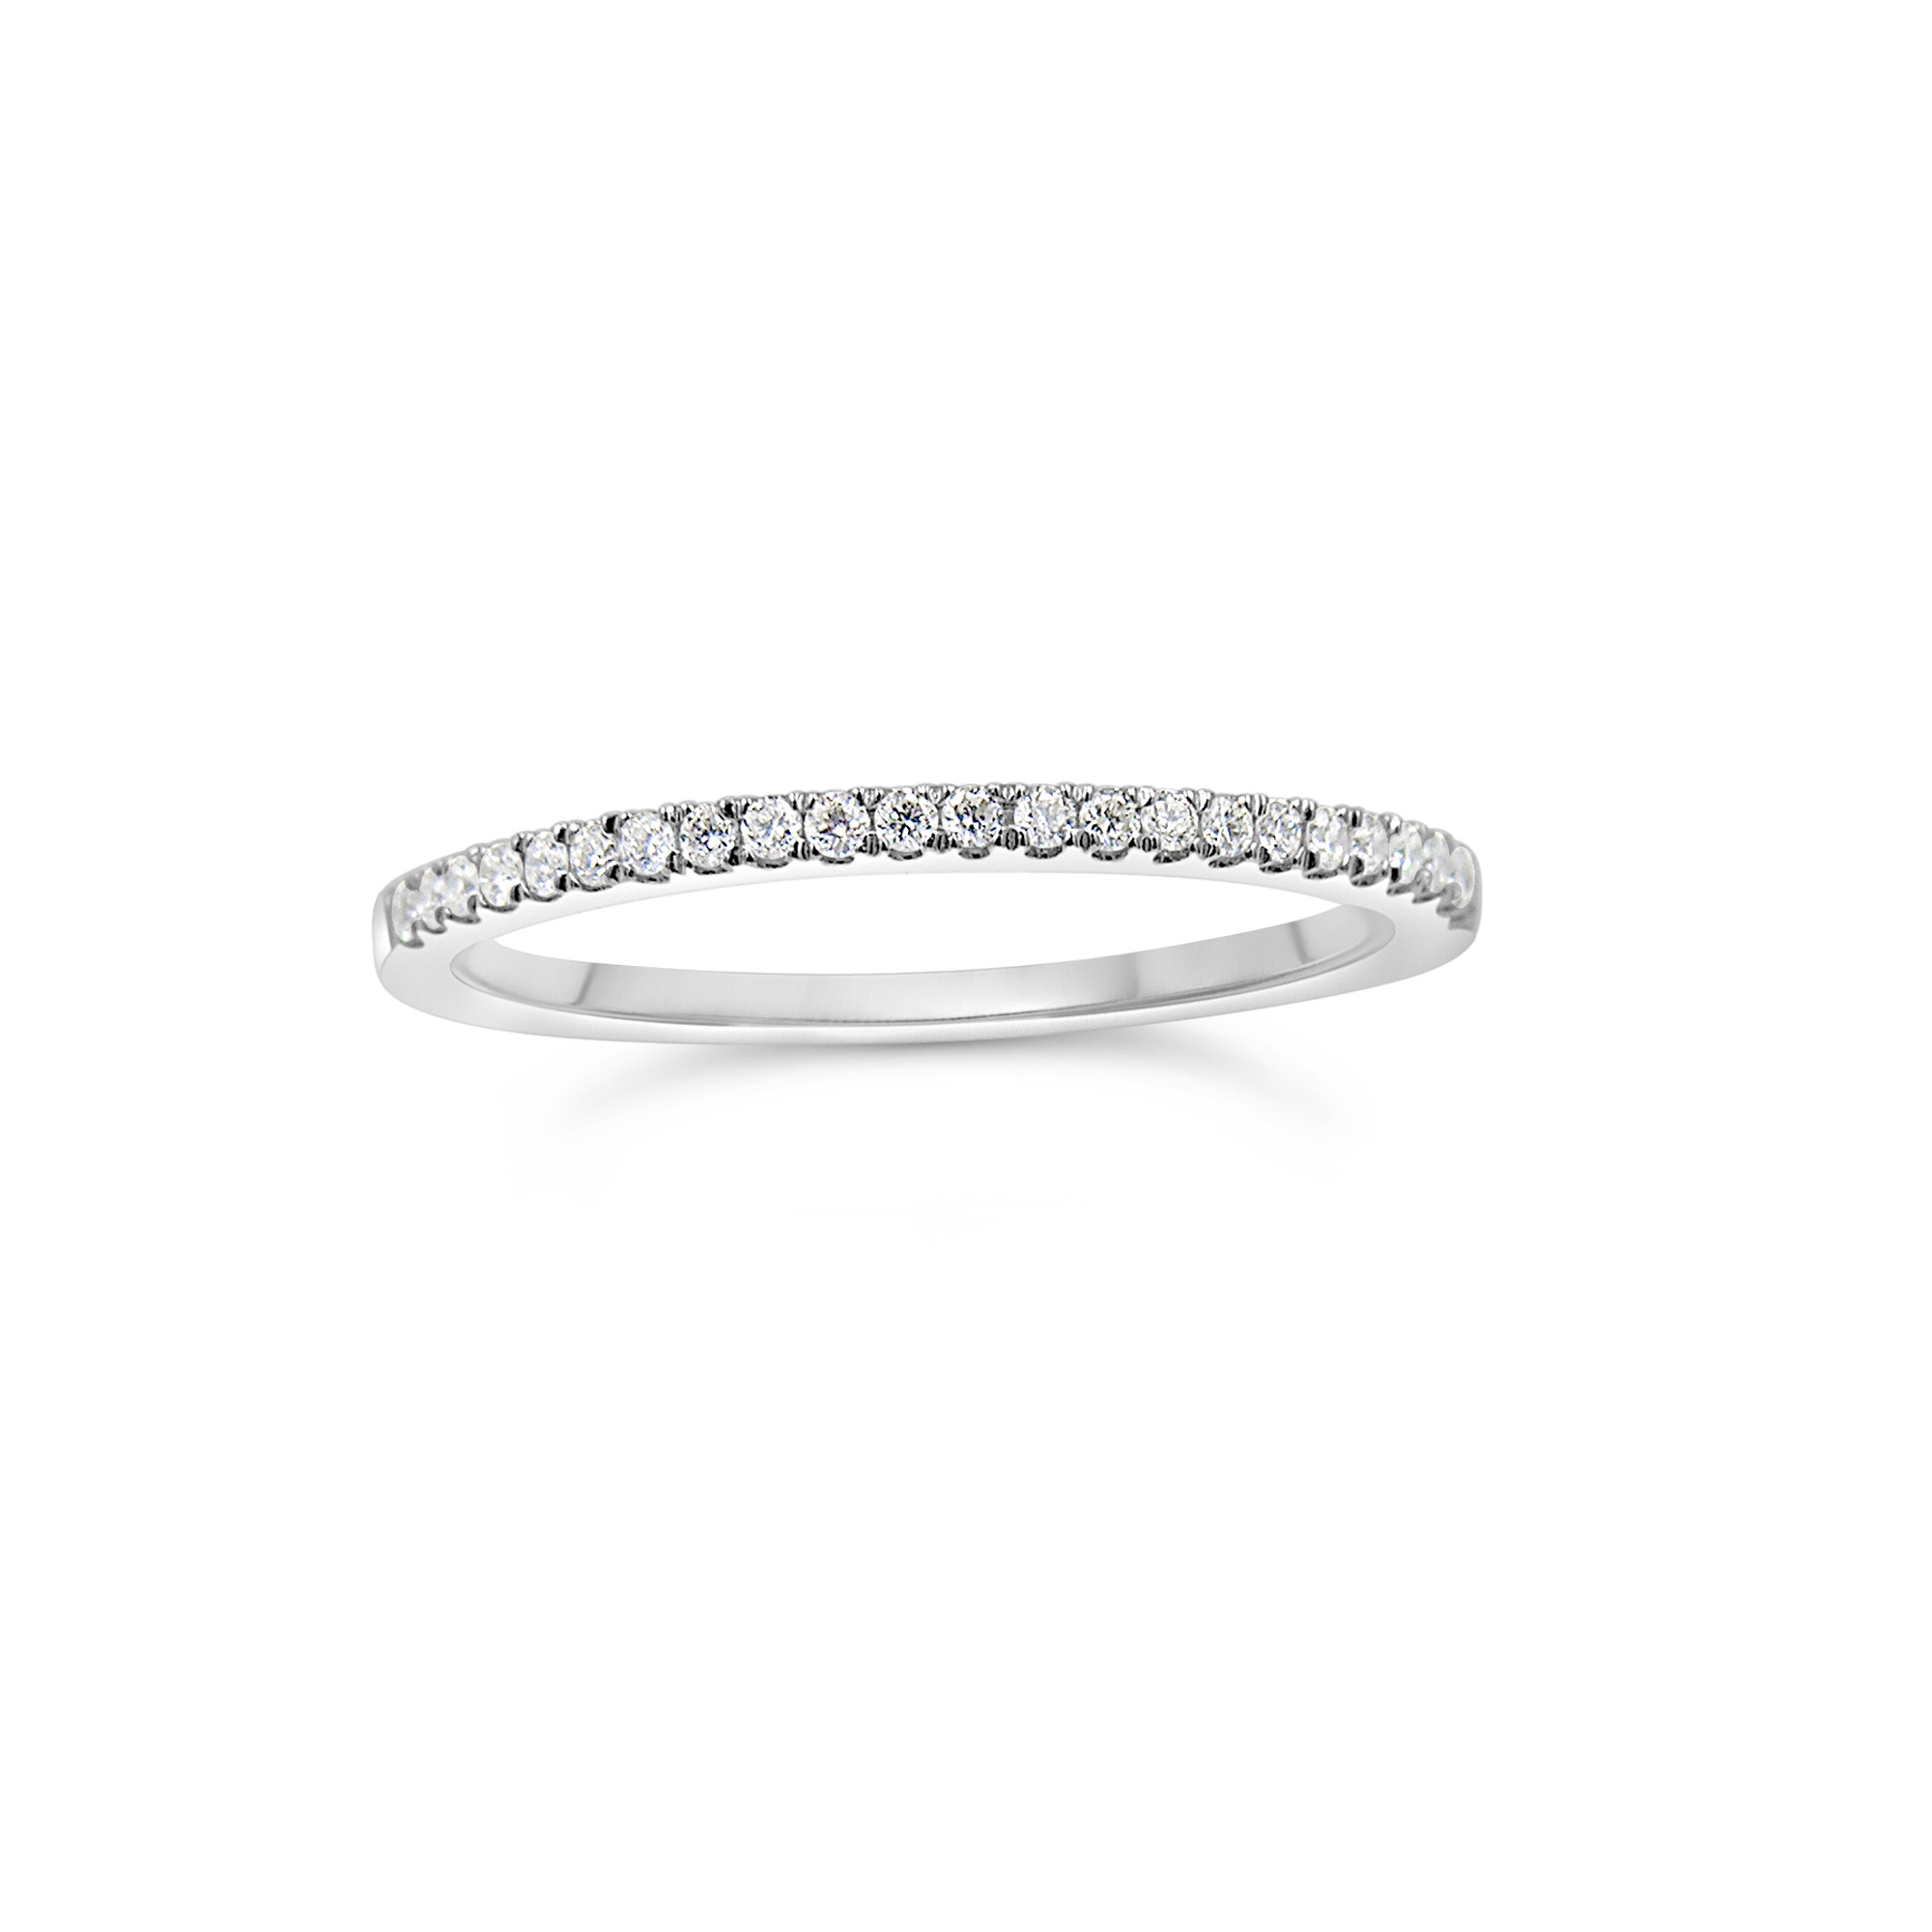 18k white gold ring with 0.15 ct diamonds